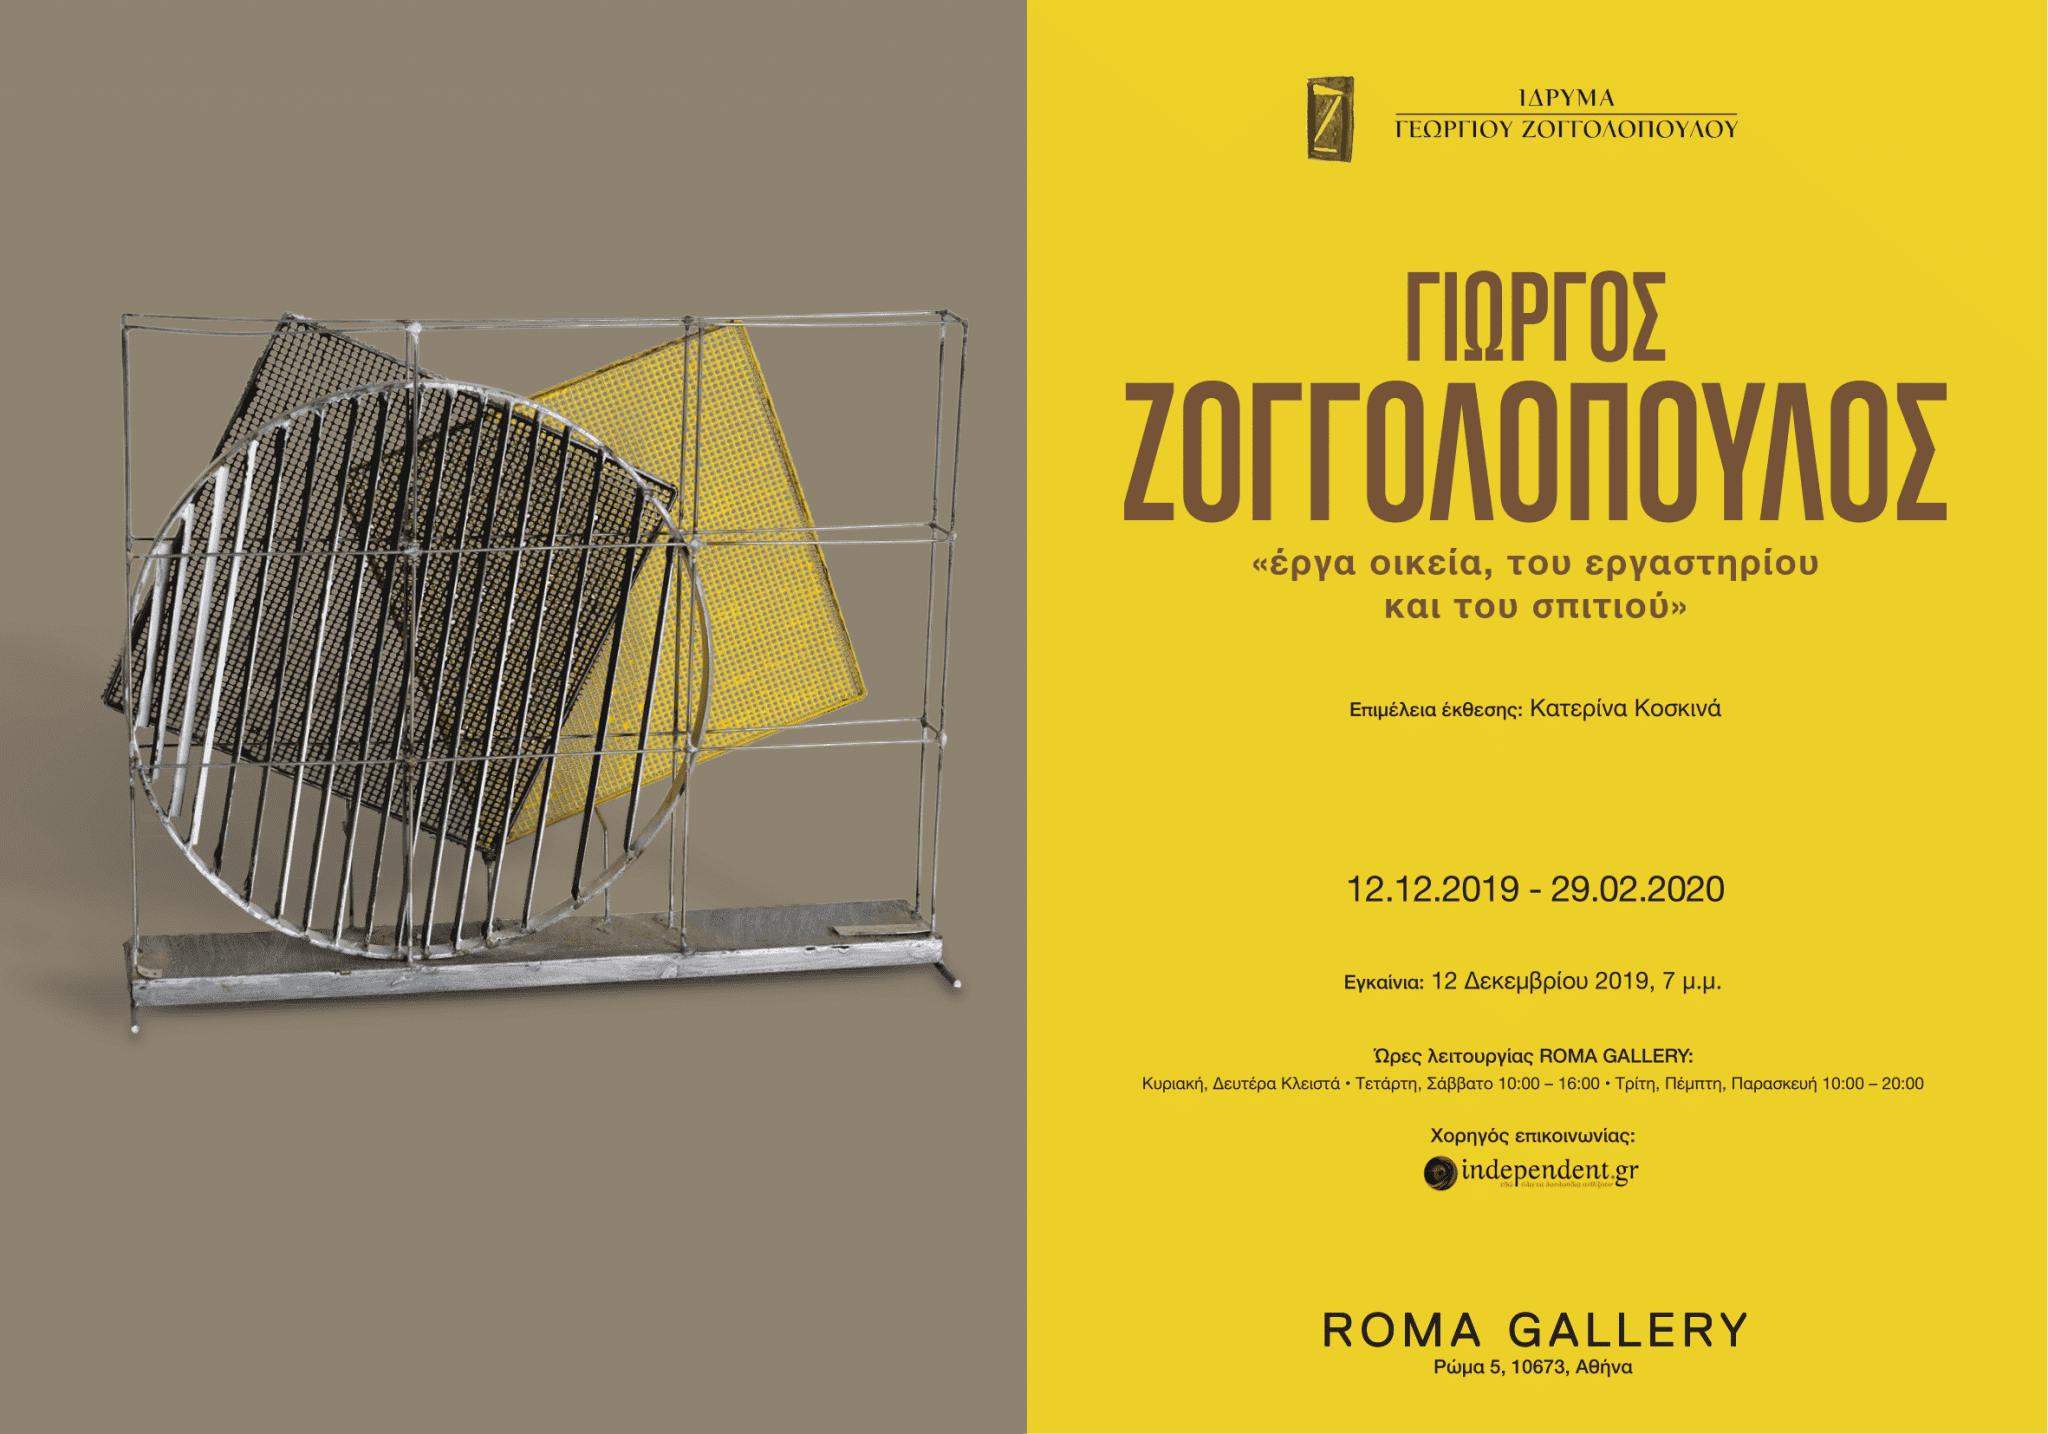 UPCOMING EXHIBITION GREEK